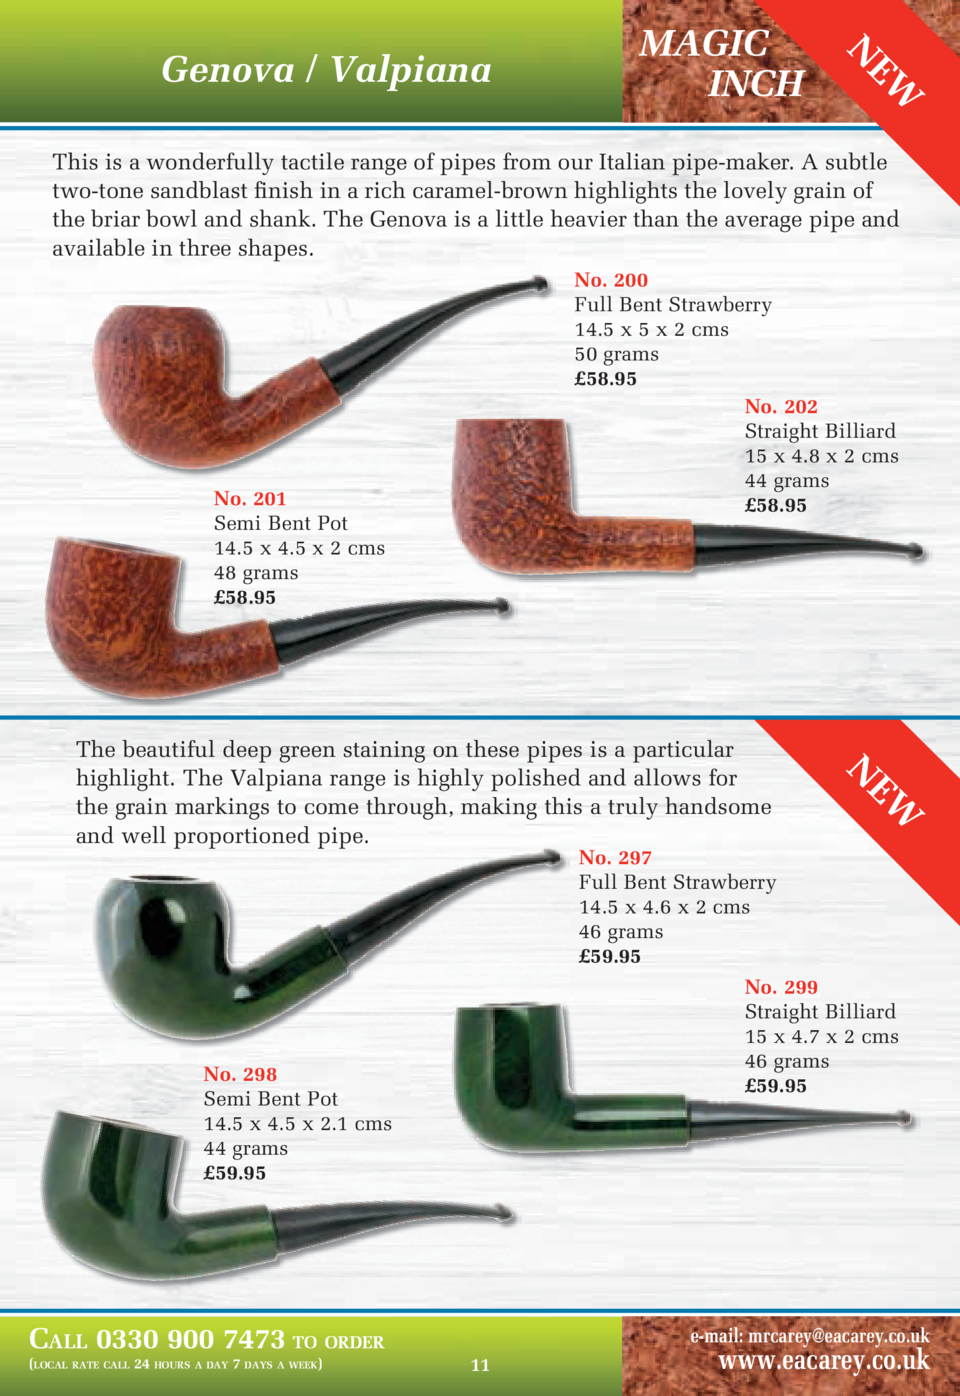 EW  MAGIC INCH  N  Genova   Valpiana  This is a wonderfully tactile range of pipes from our Italian pipe-maker. A subtle t...